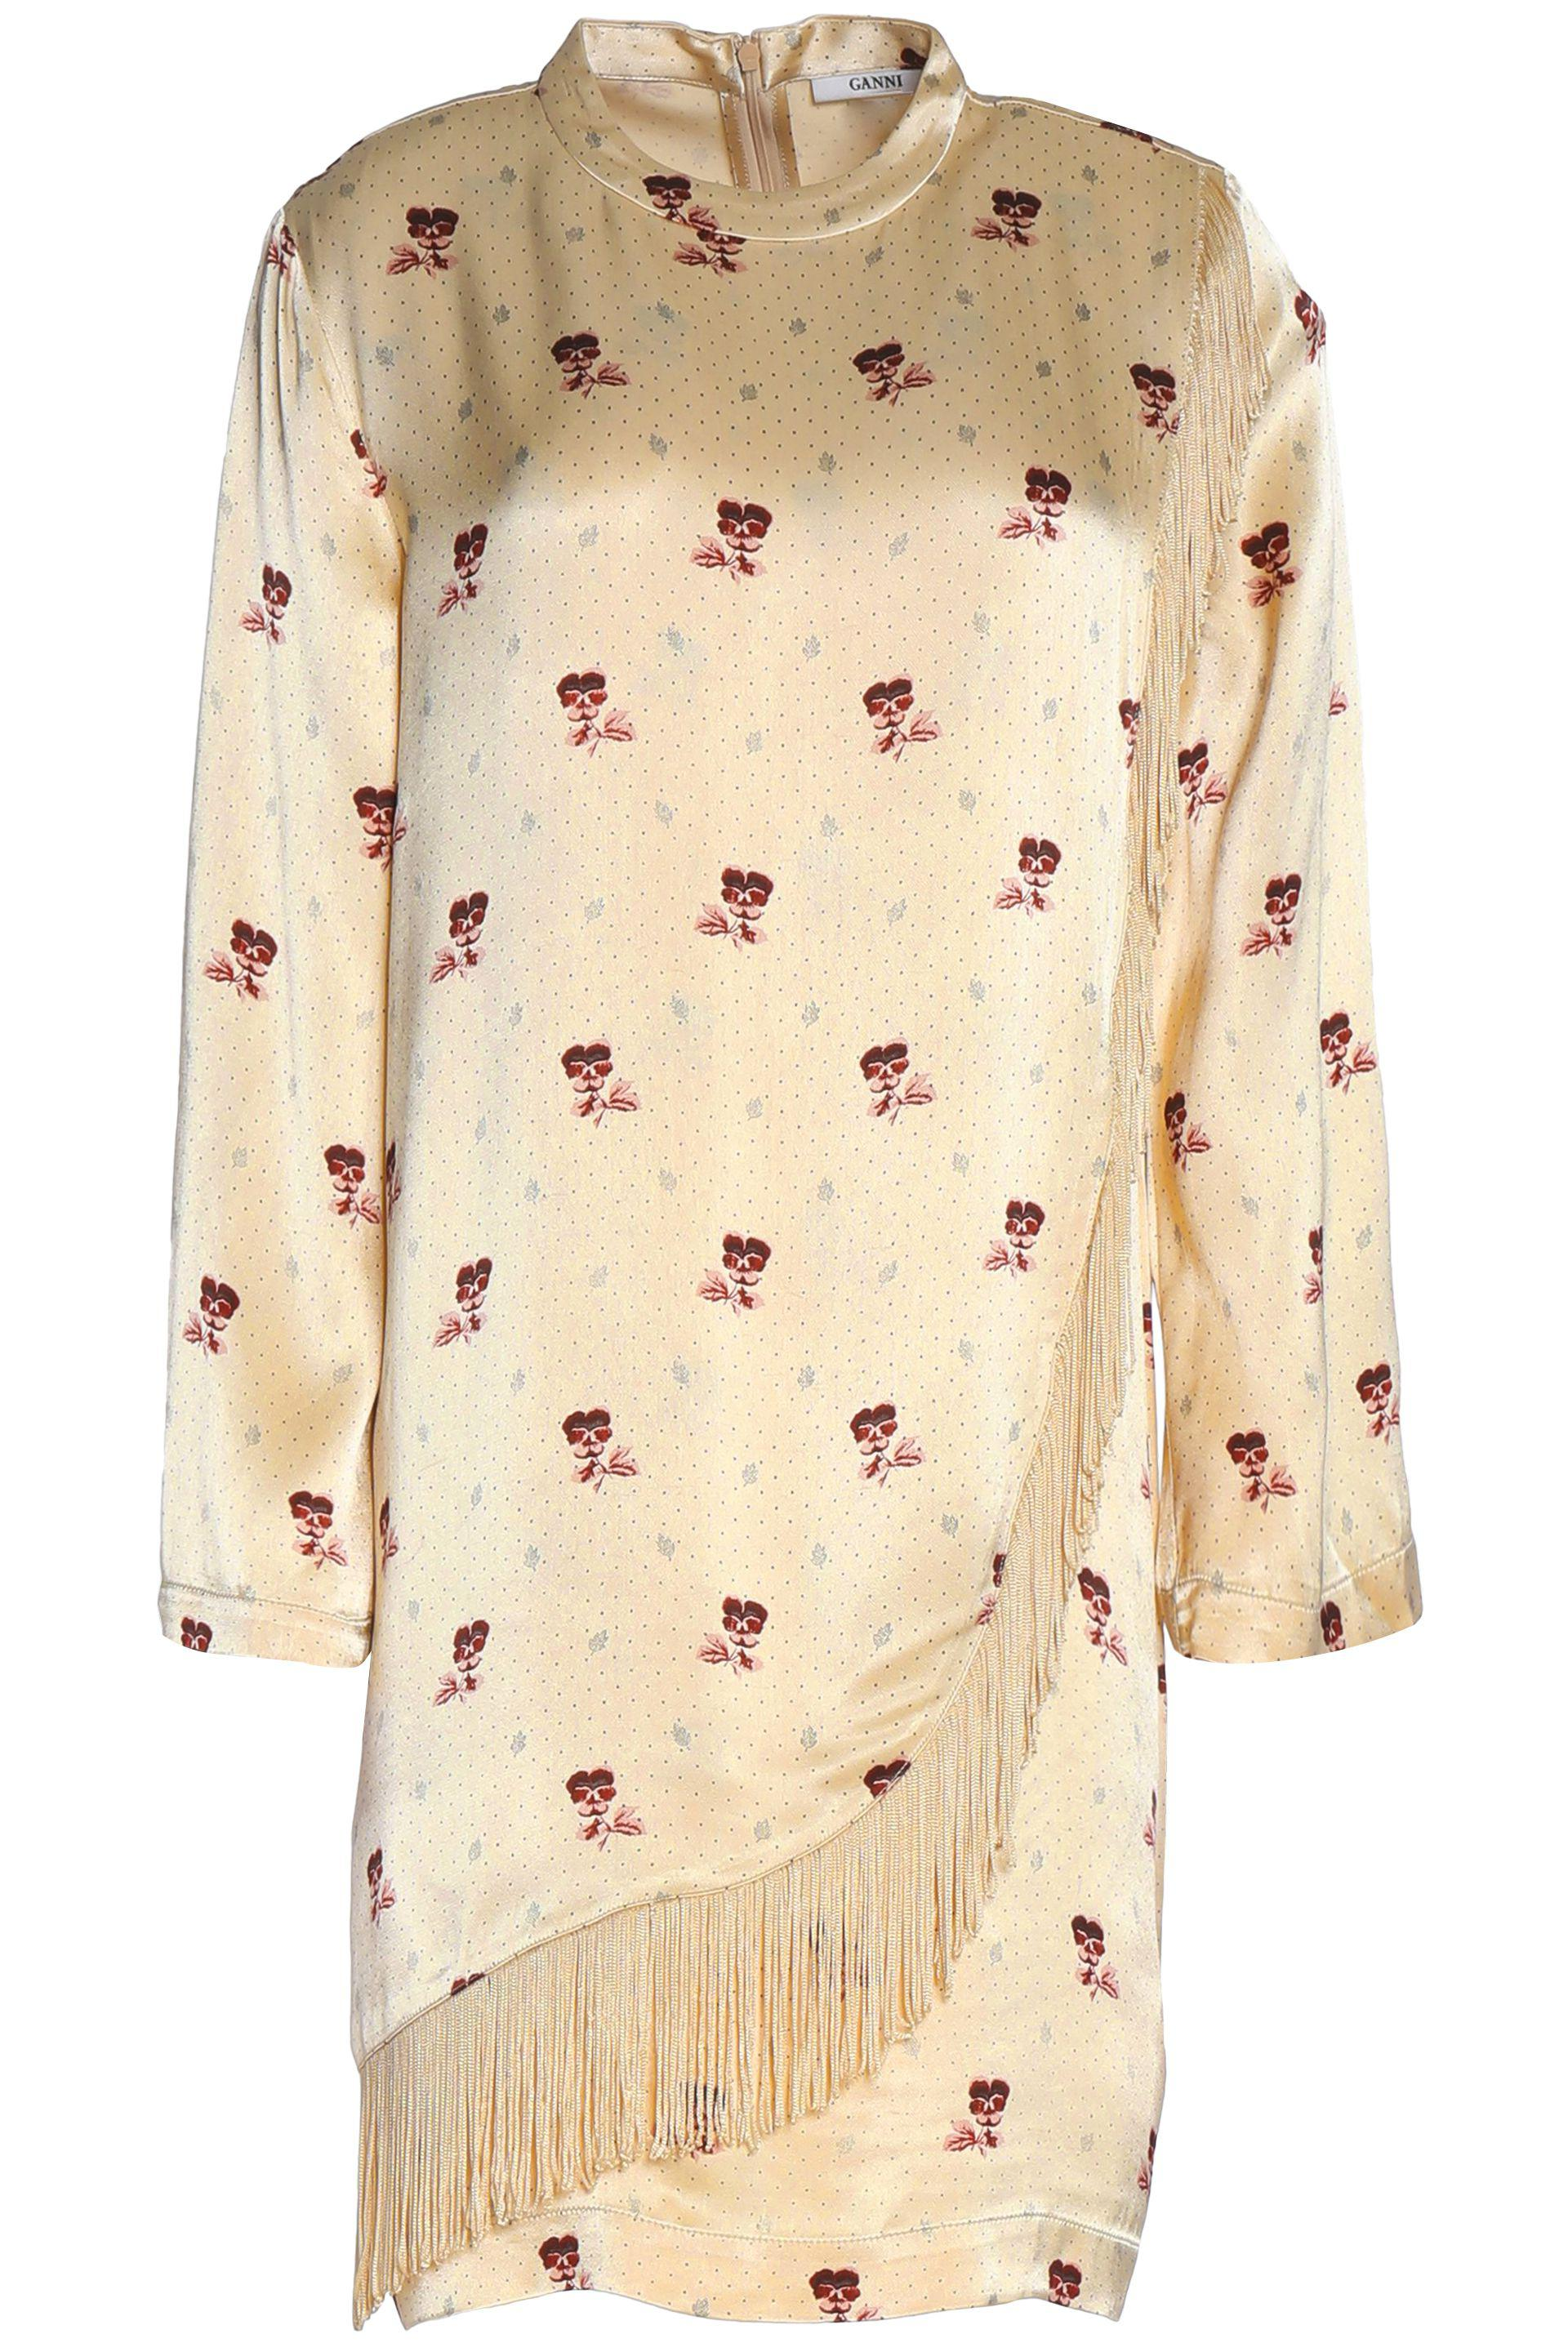 Ganni Woman Donnelly Fringed Floral-print Satin Shirt Beige Size 42 Ganni Sale Get To Buy Outlet The Cheapest Cheap Sale Genuine D10zVhvUC